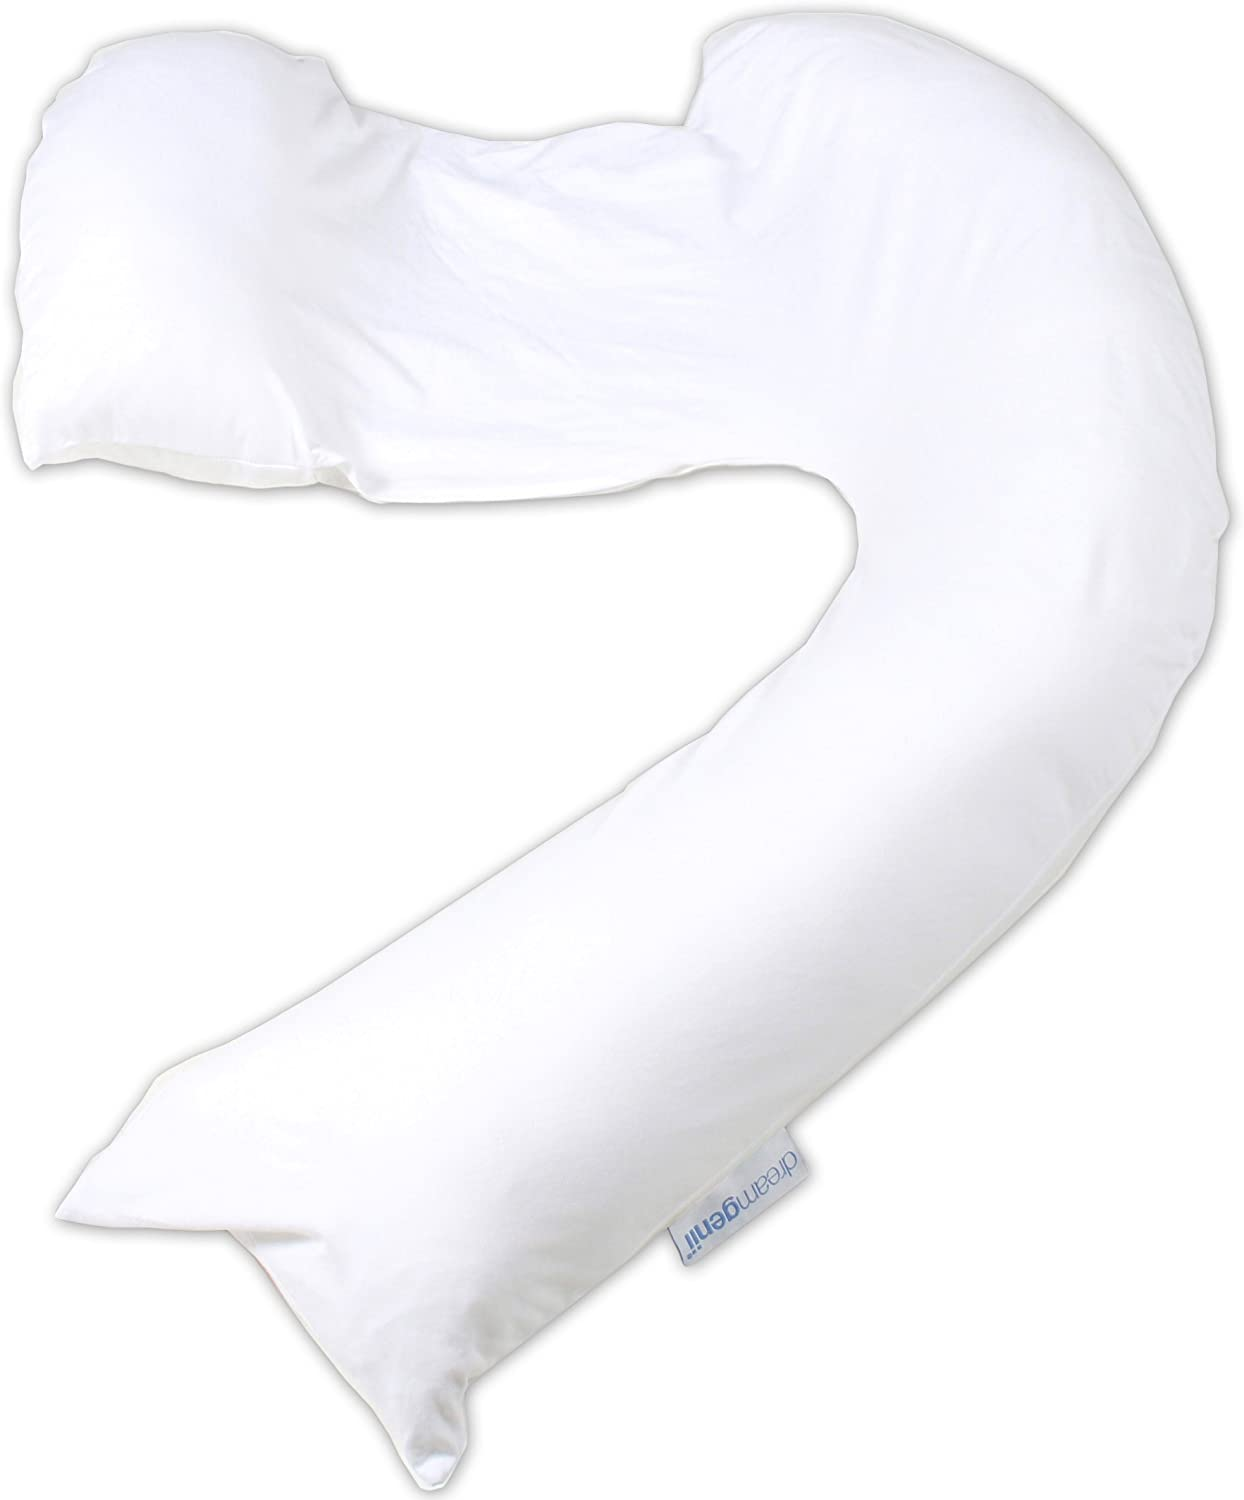 Buy Dreamgenii Pregnancy Pillow White